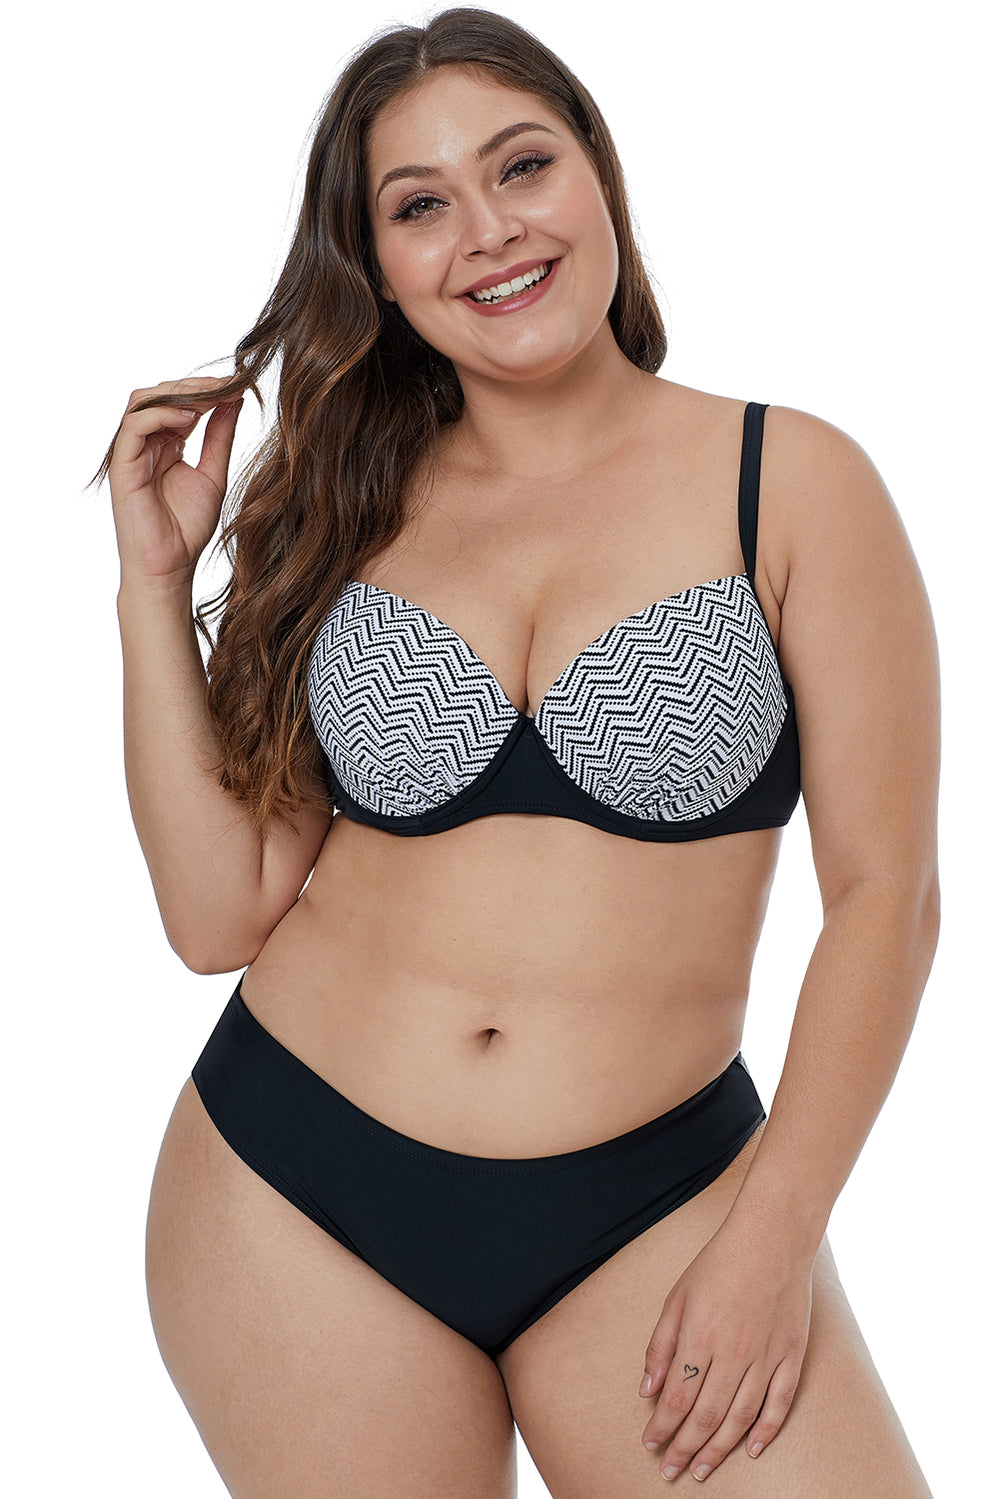 d5edd8c24 Waves Print Cups Plus Size Bikini Swimwear – FabWoo